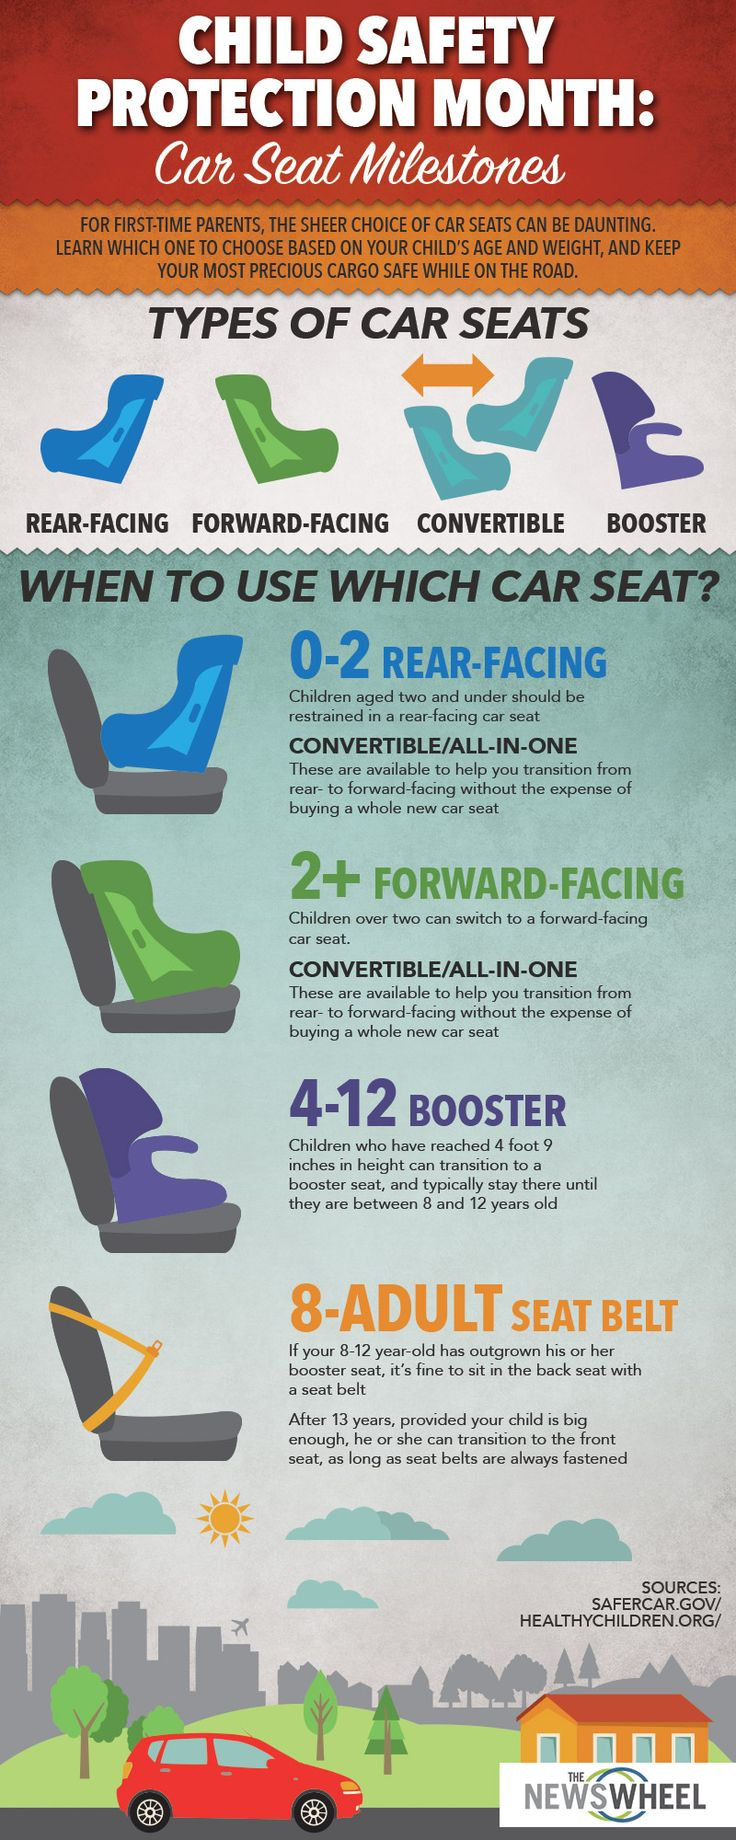 do you know the age when a baby can ride in a forward facing car seat